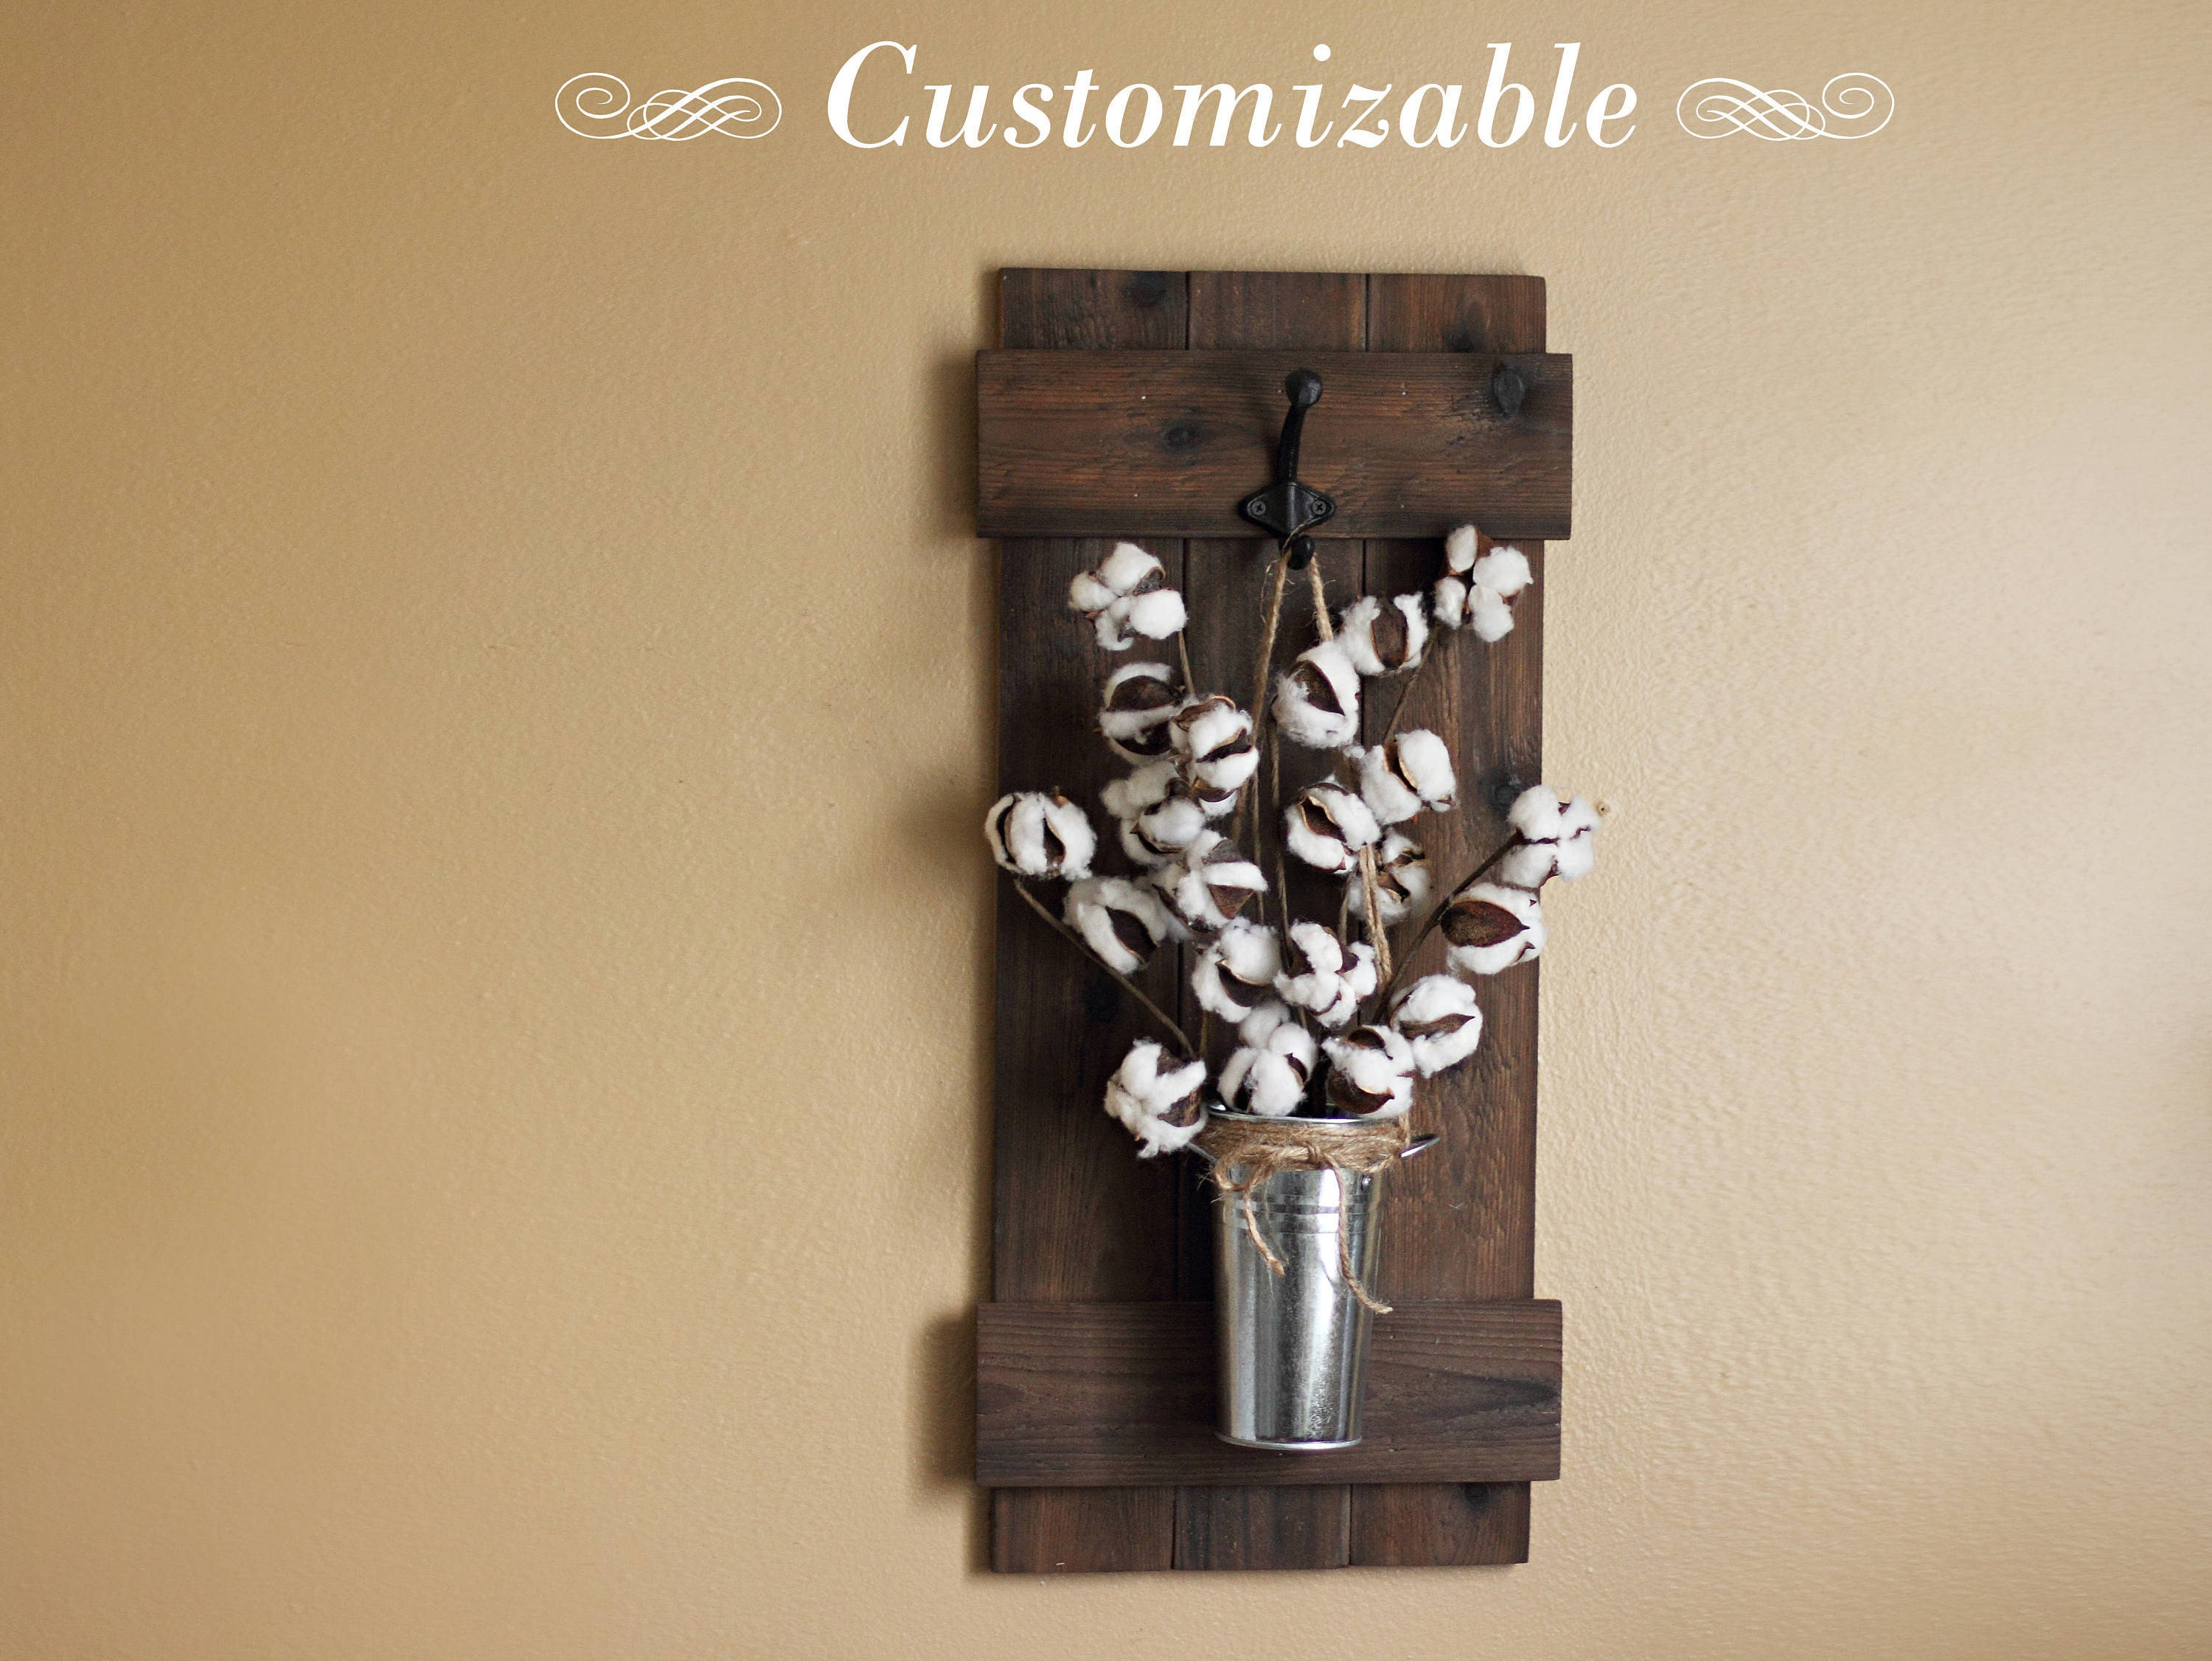 Cotton stem decor rustic wall decor wall hanging wooden zoom amipublicfo Images